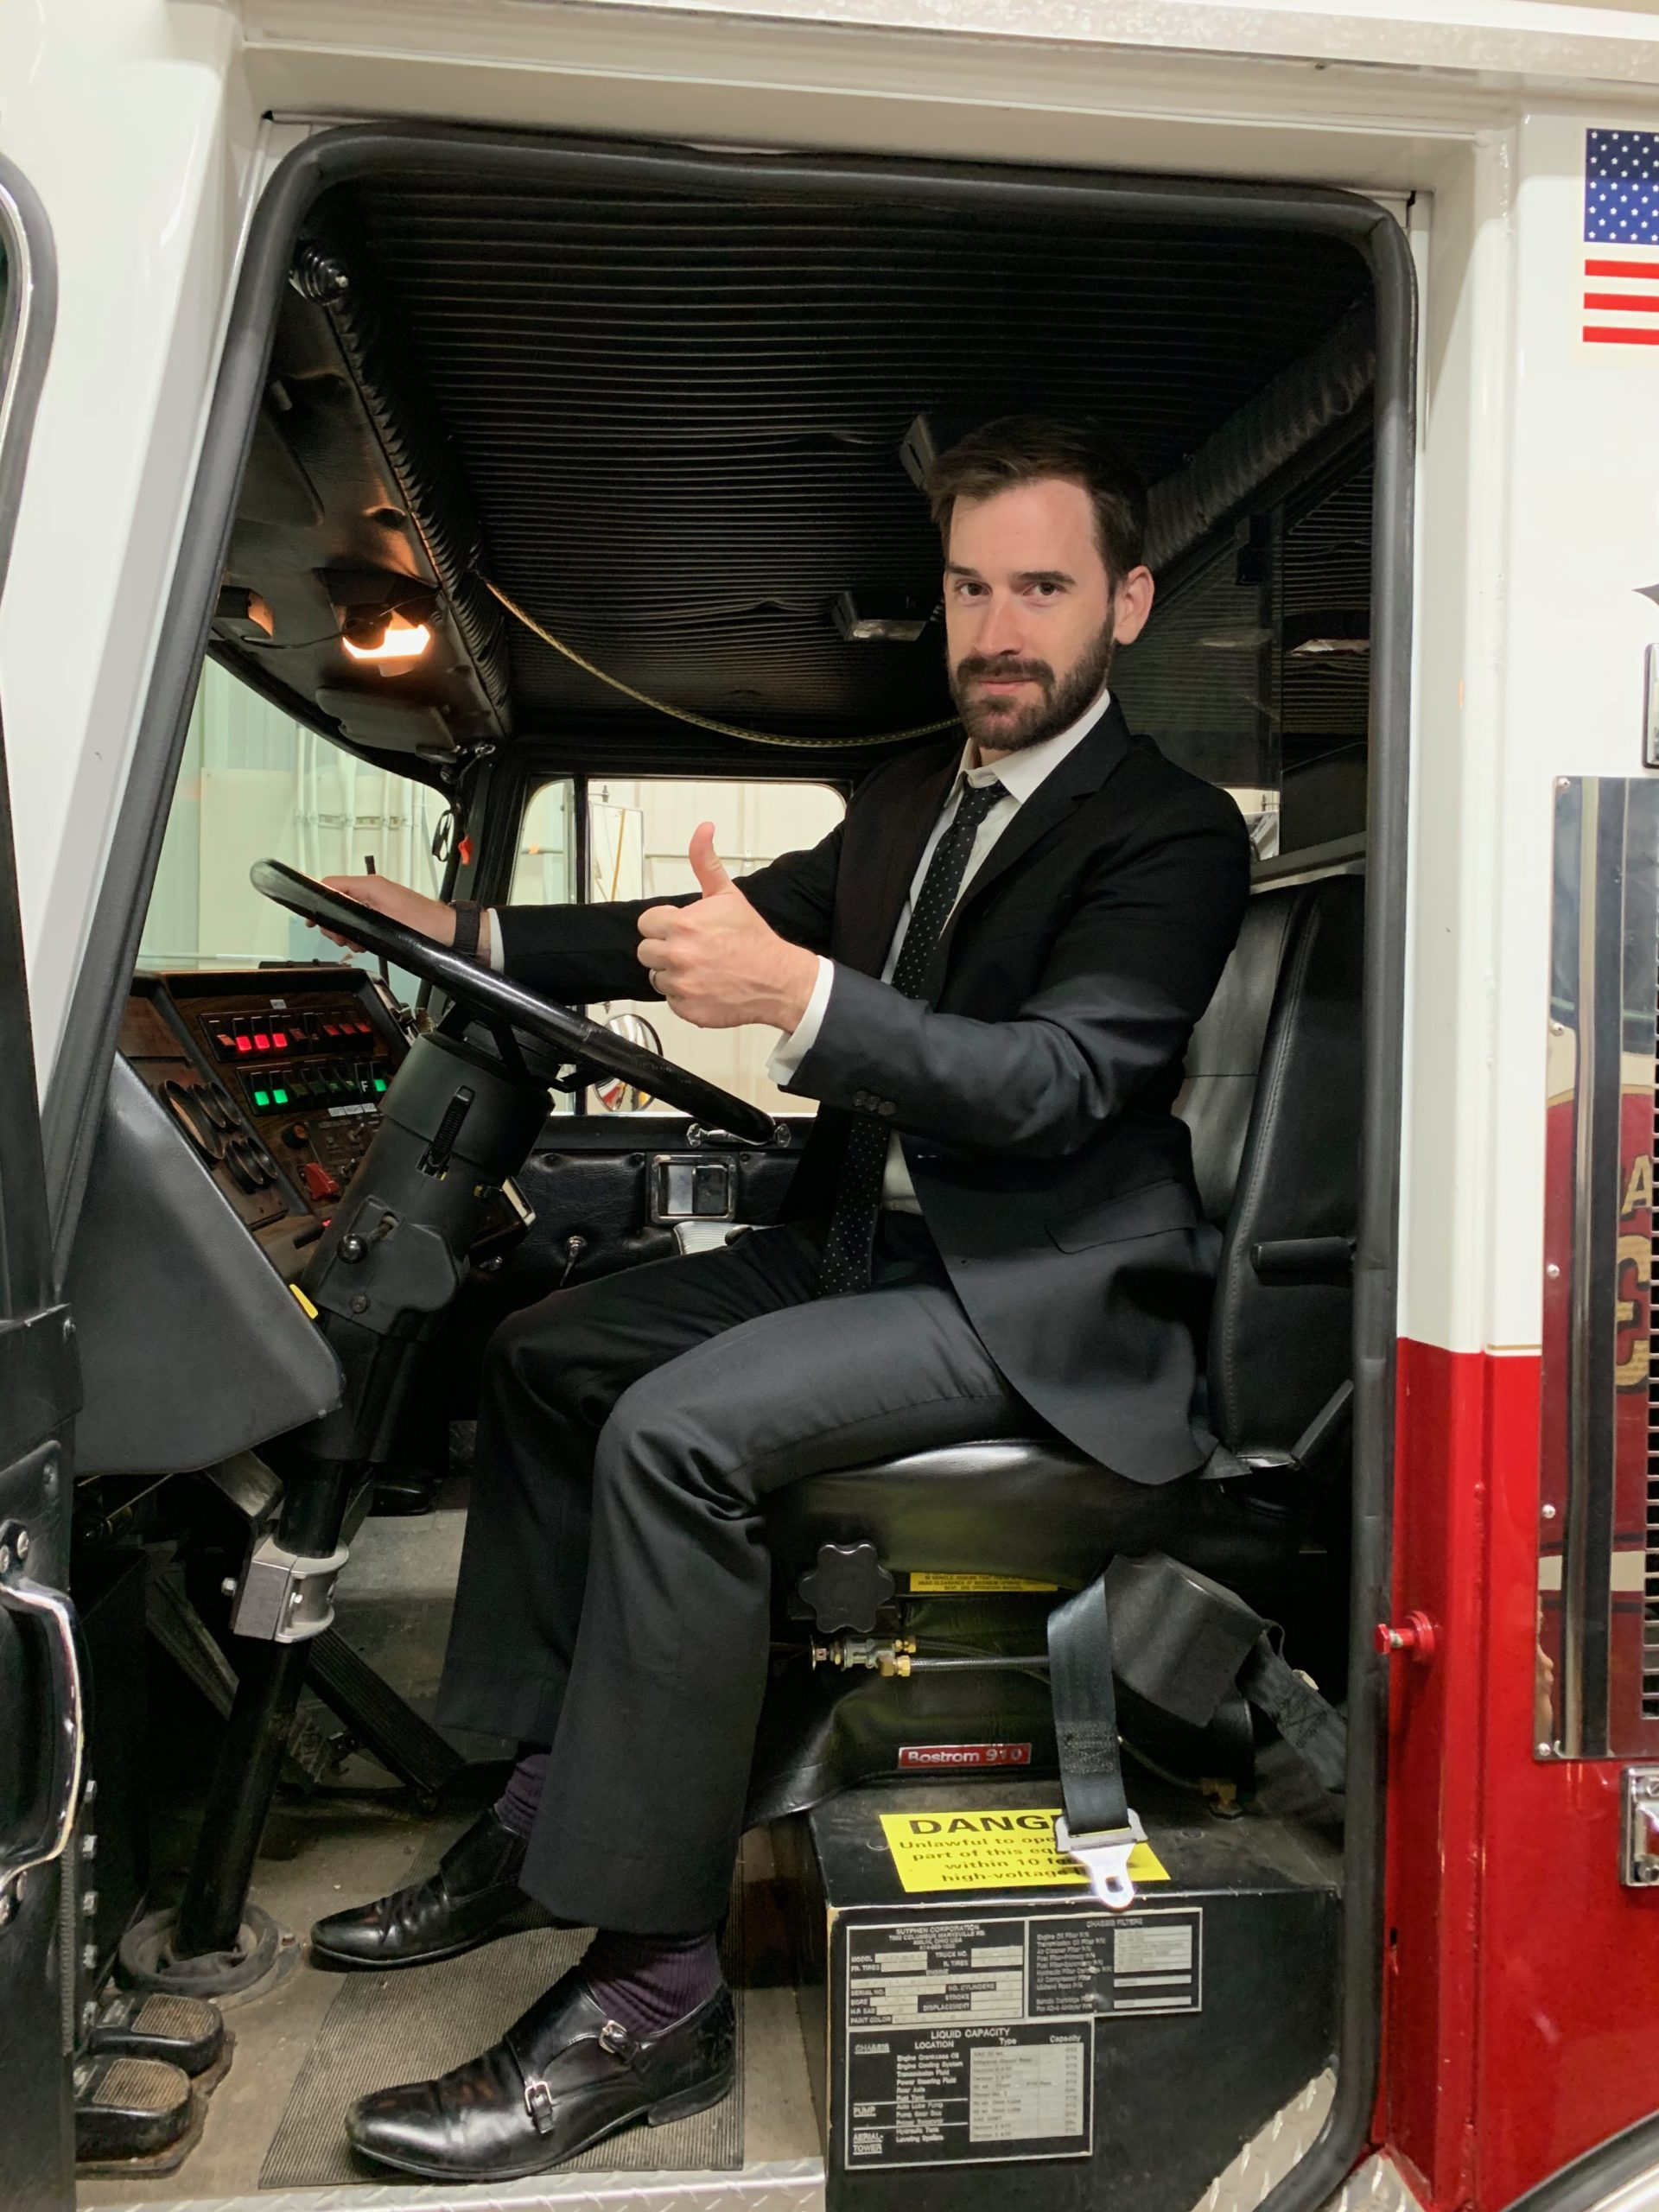 Dan Winckler sitting behind the wheel of a firetruck wearing a black suit and giving a thumbs-up.